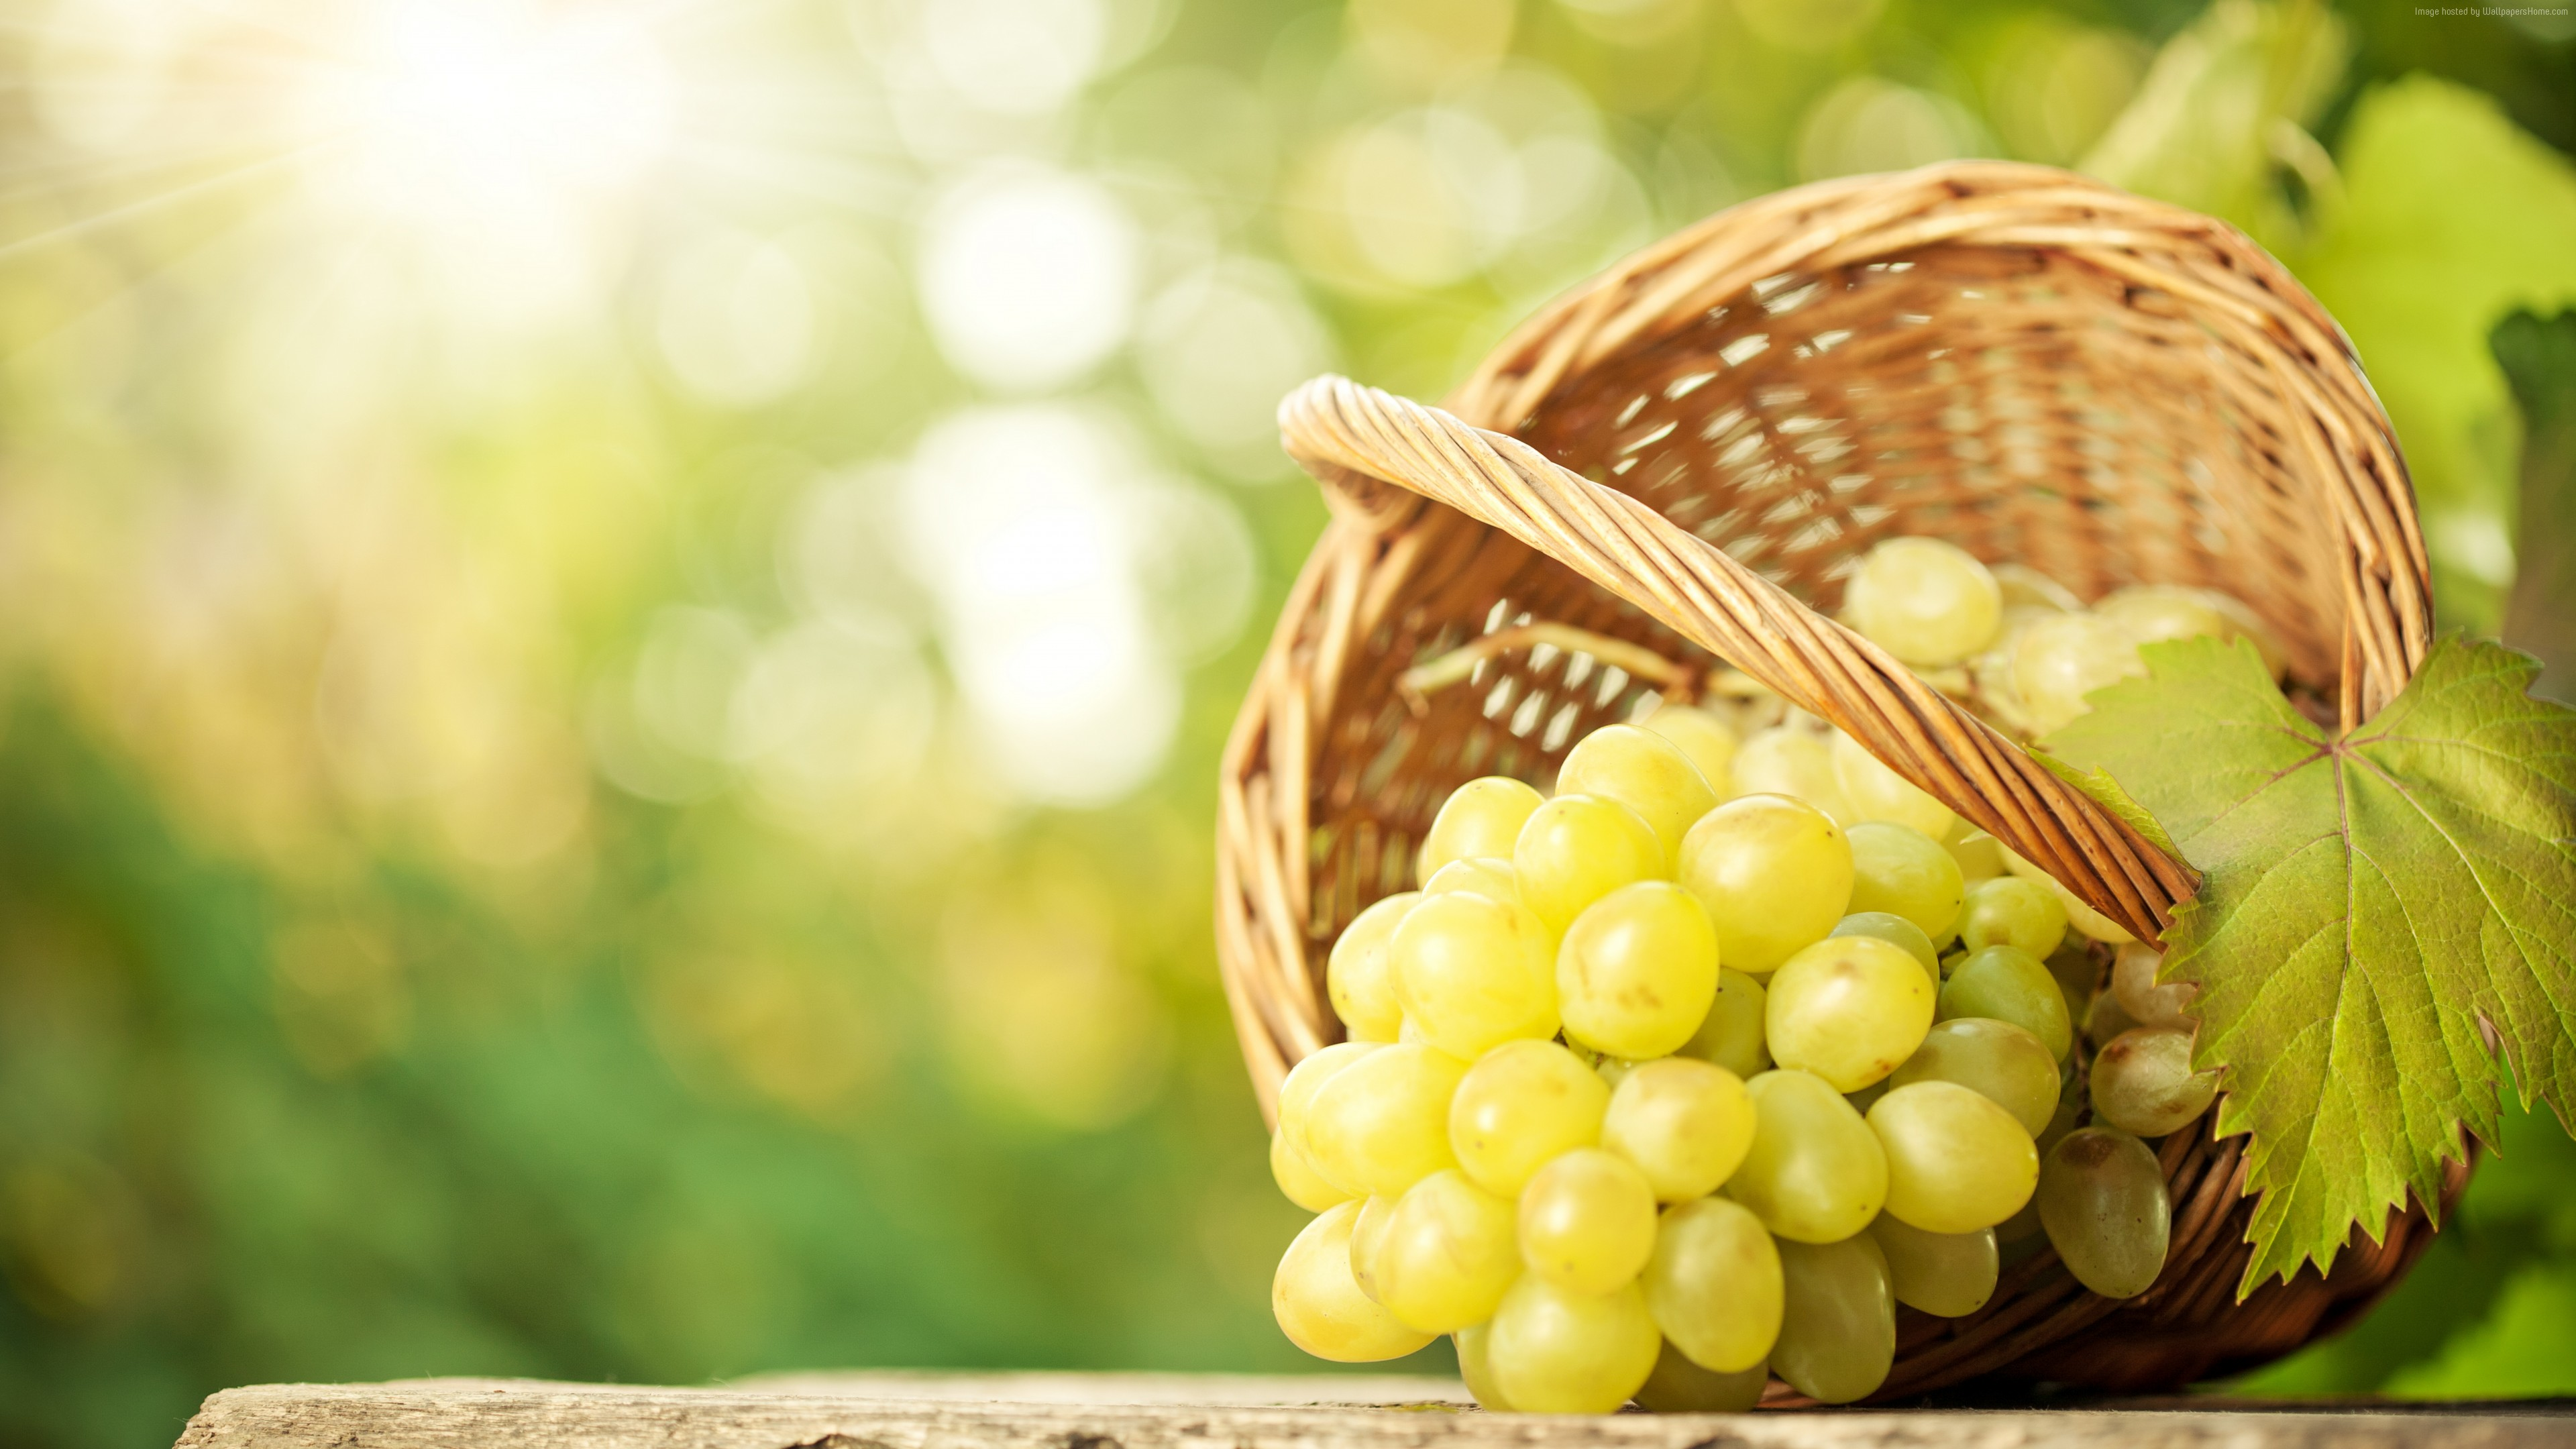 Wallpaper grapes, 8k, Food